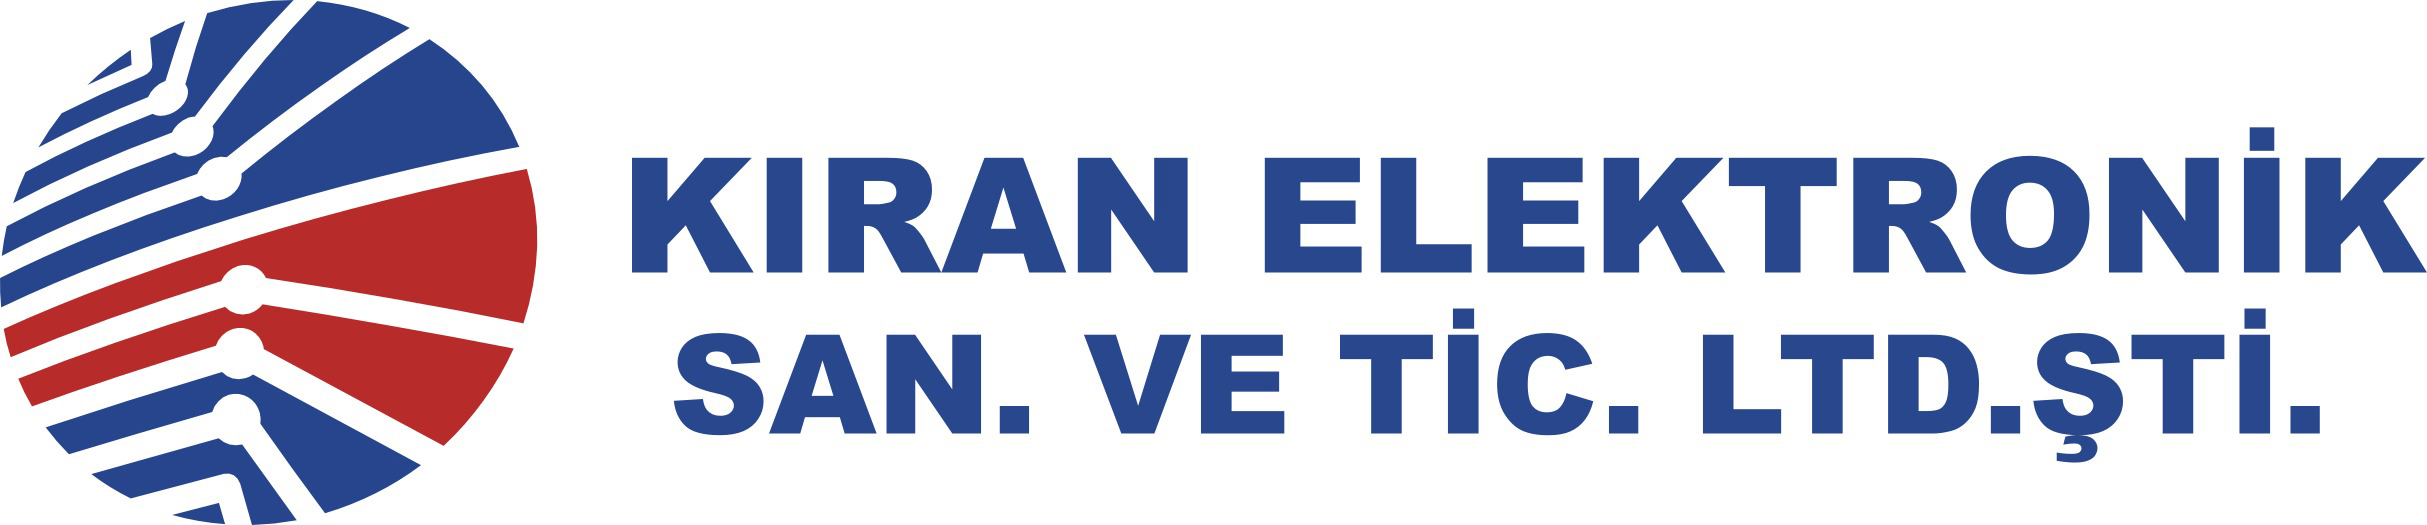 KIRAN ELEKTRONİK SAN. VE TİC. LTD.ŞTİ.